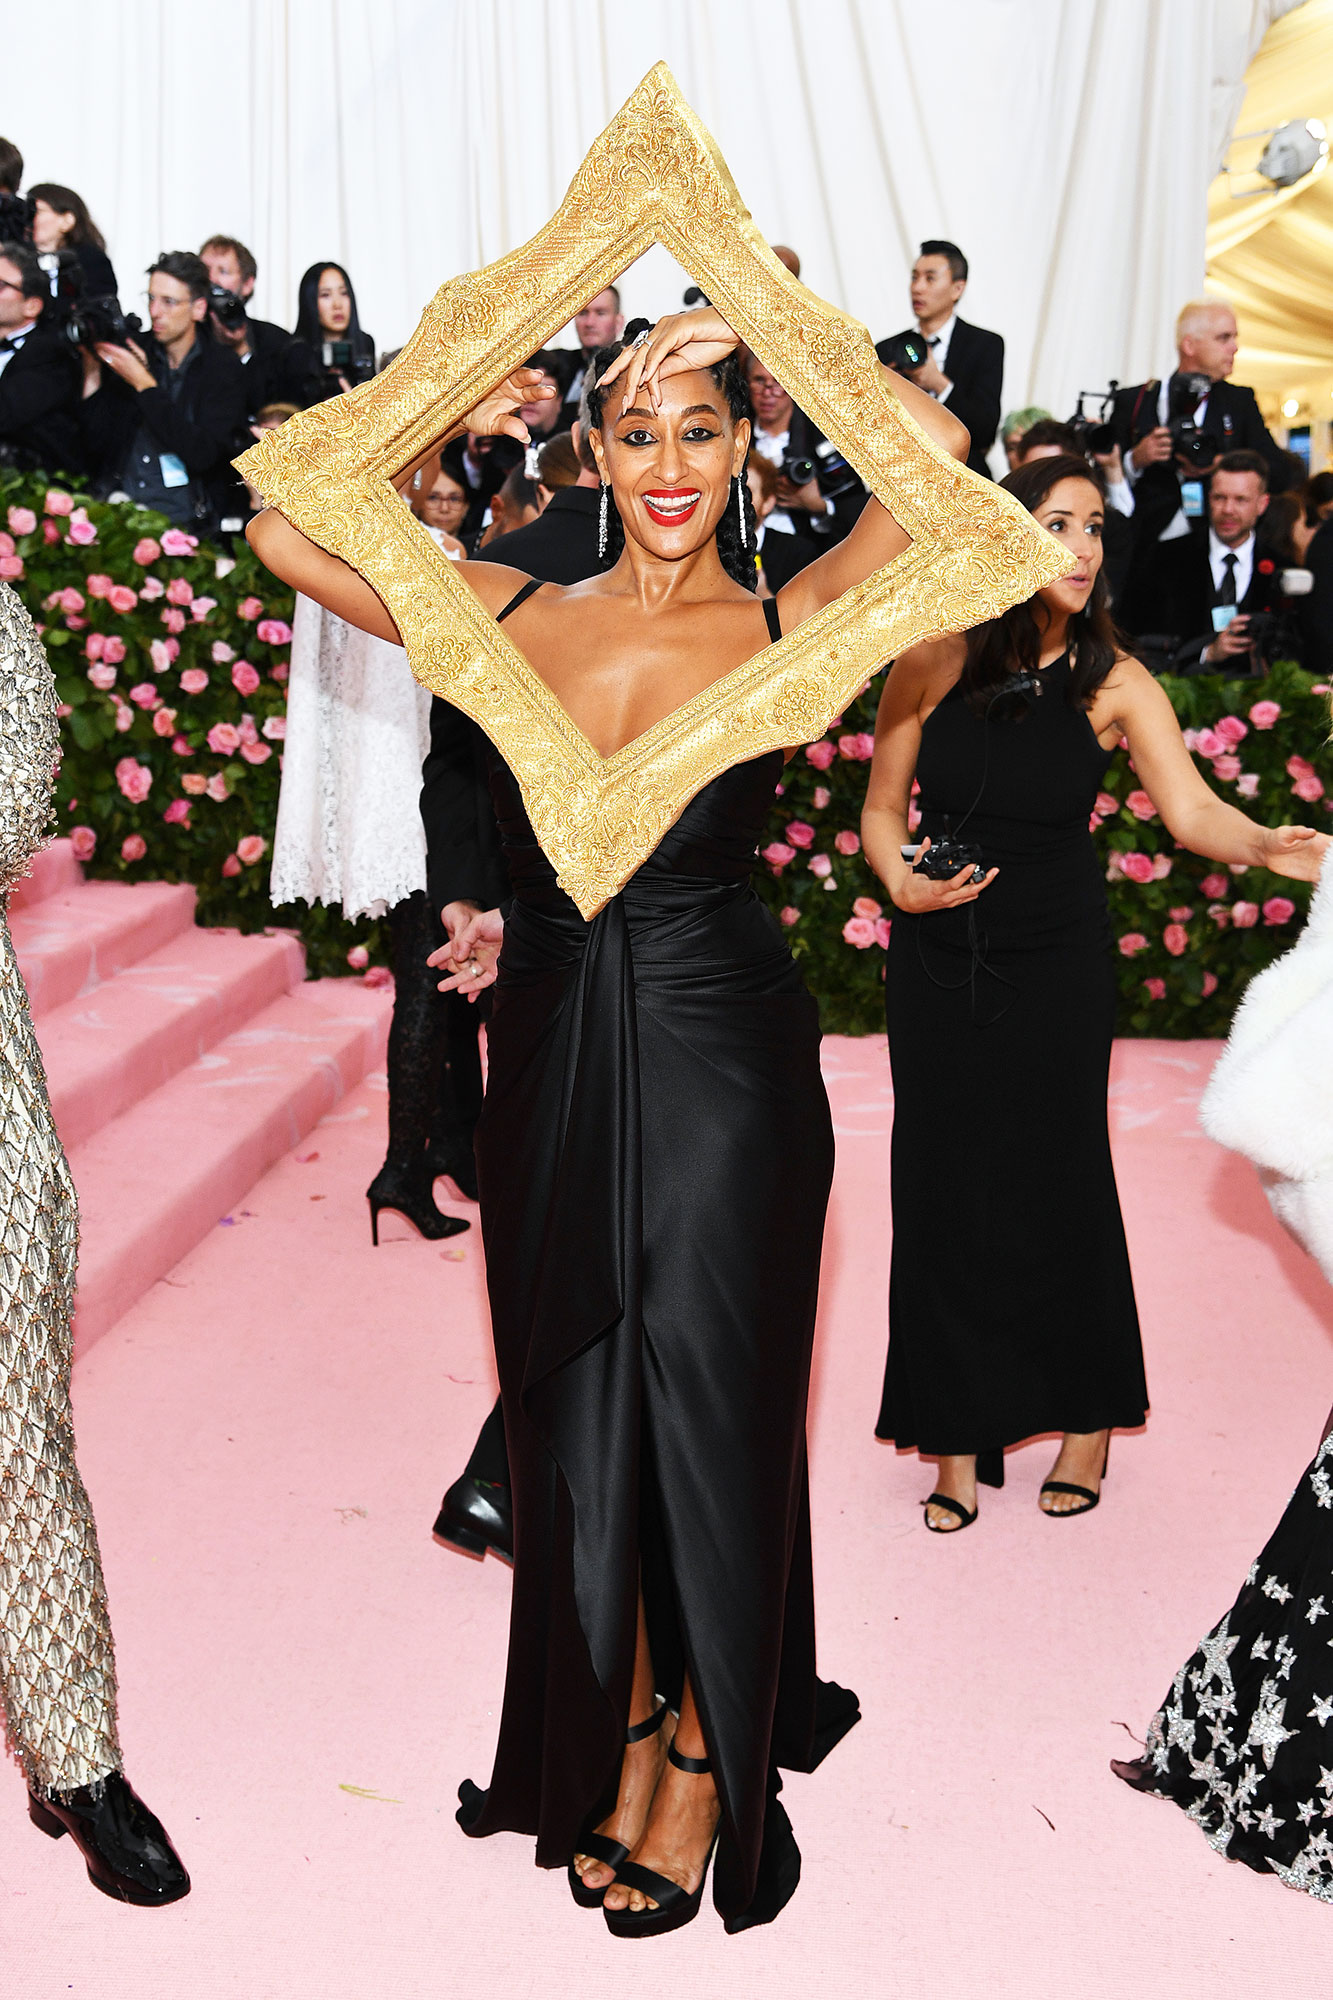 Met Gala 2019 Red Carpet Fashion See Celeb Dresses Gowns